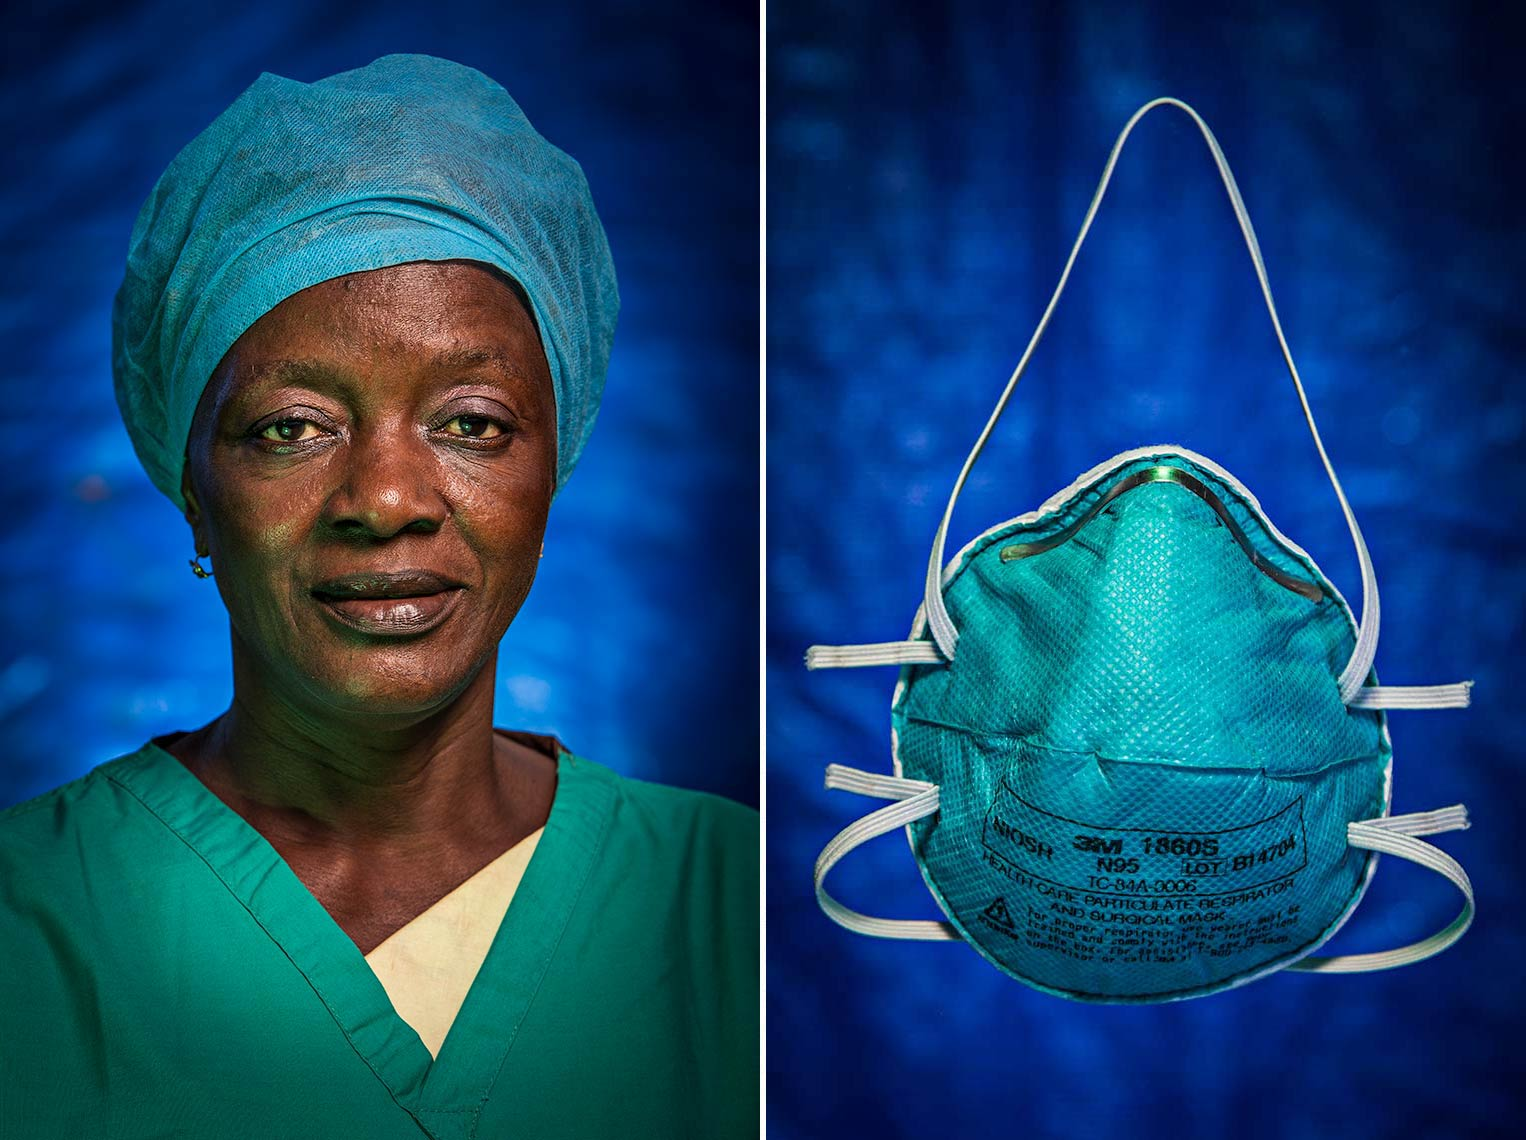 Portrait of Head Nurse of Ebola Treatment Unit in West Africa